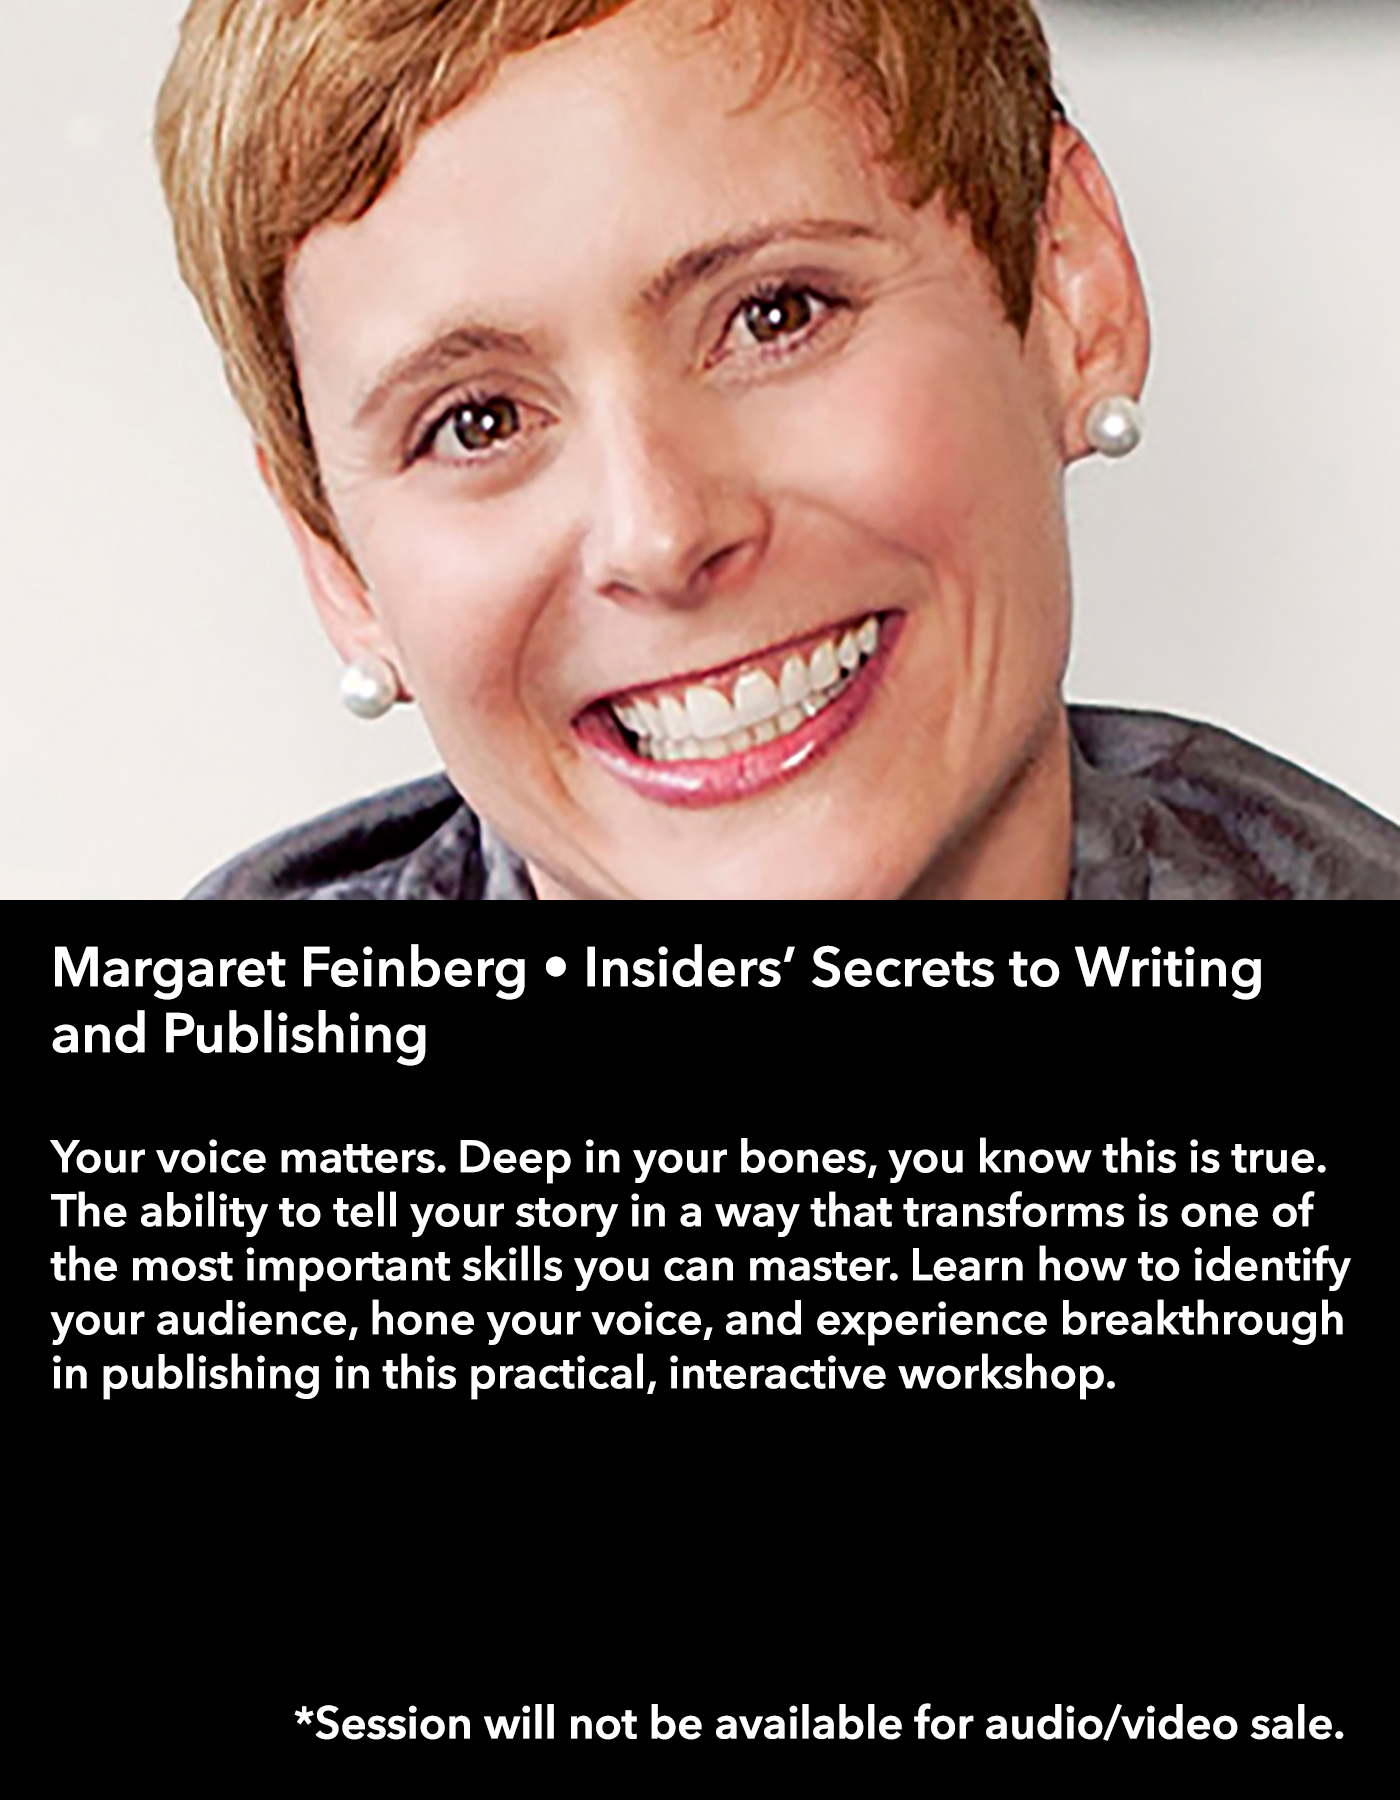 Margaret Feinberg • Insiders' Secrets to Writing and Publishing • Friday Afternoon, March 17 • 3:30 – 4:45 pm